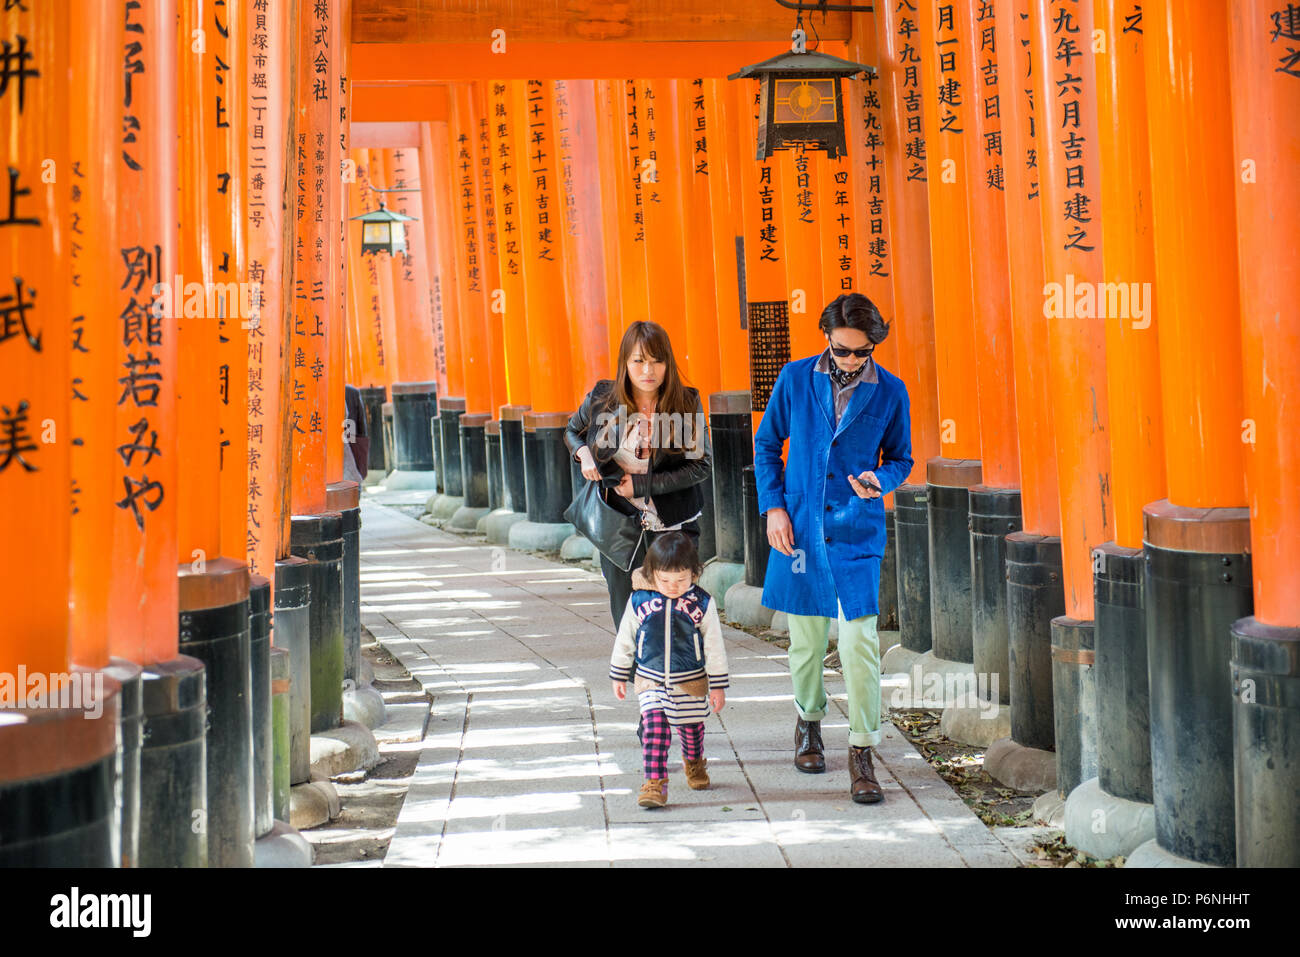 Japanese tourists explore Fushimi Inari Taisha in Kyoto, Japan. Along the main path there are more than 10000 torii gates. - Stock Image